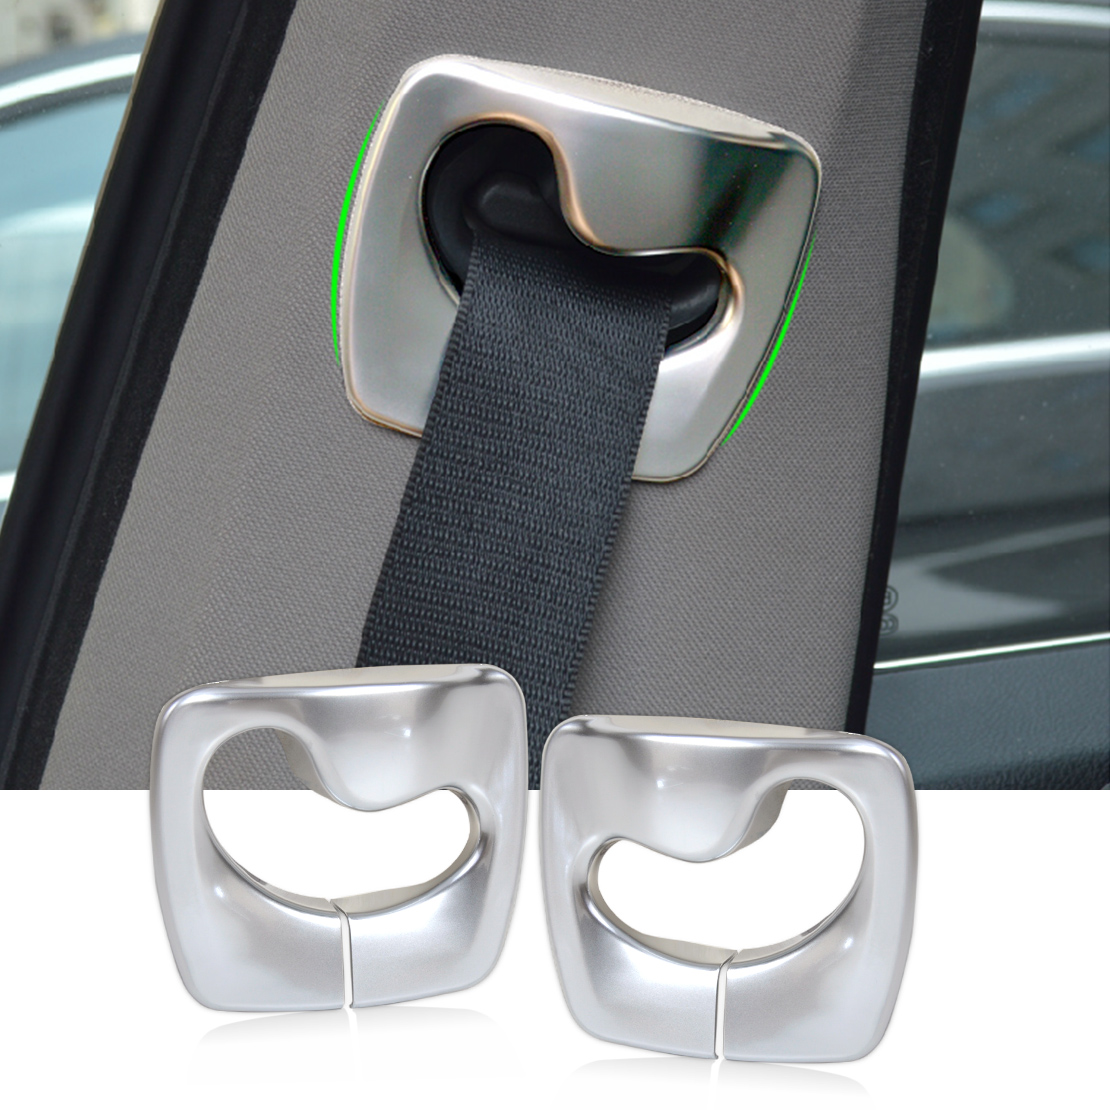 DWCX car-styling 2pcs Matt Chrome B Pillar Safety Seat Belt Cover Trim For BMW 5 Series F10 2011 2012 2013 2014 2015 chrome 3pcs interior head light lamp switch button cover trim for bmw 5 series f10 2011 2012 2013 2014 car styling